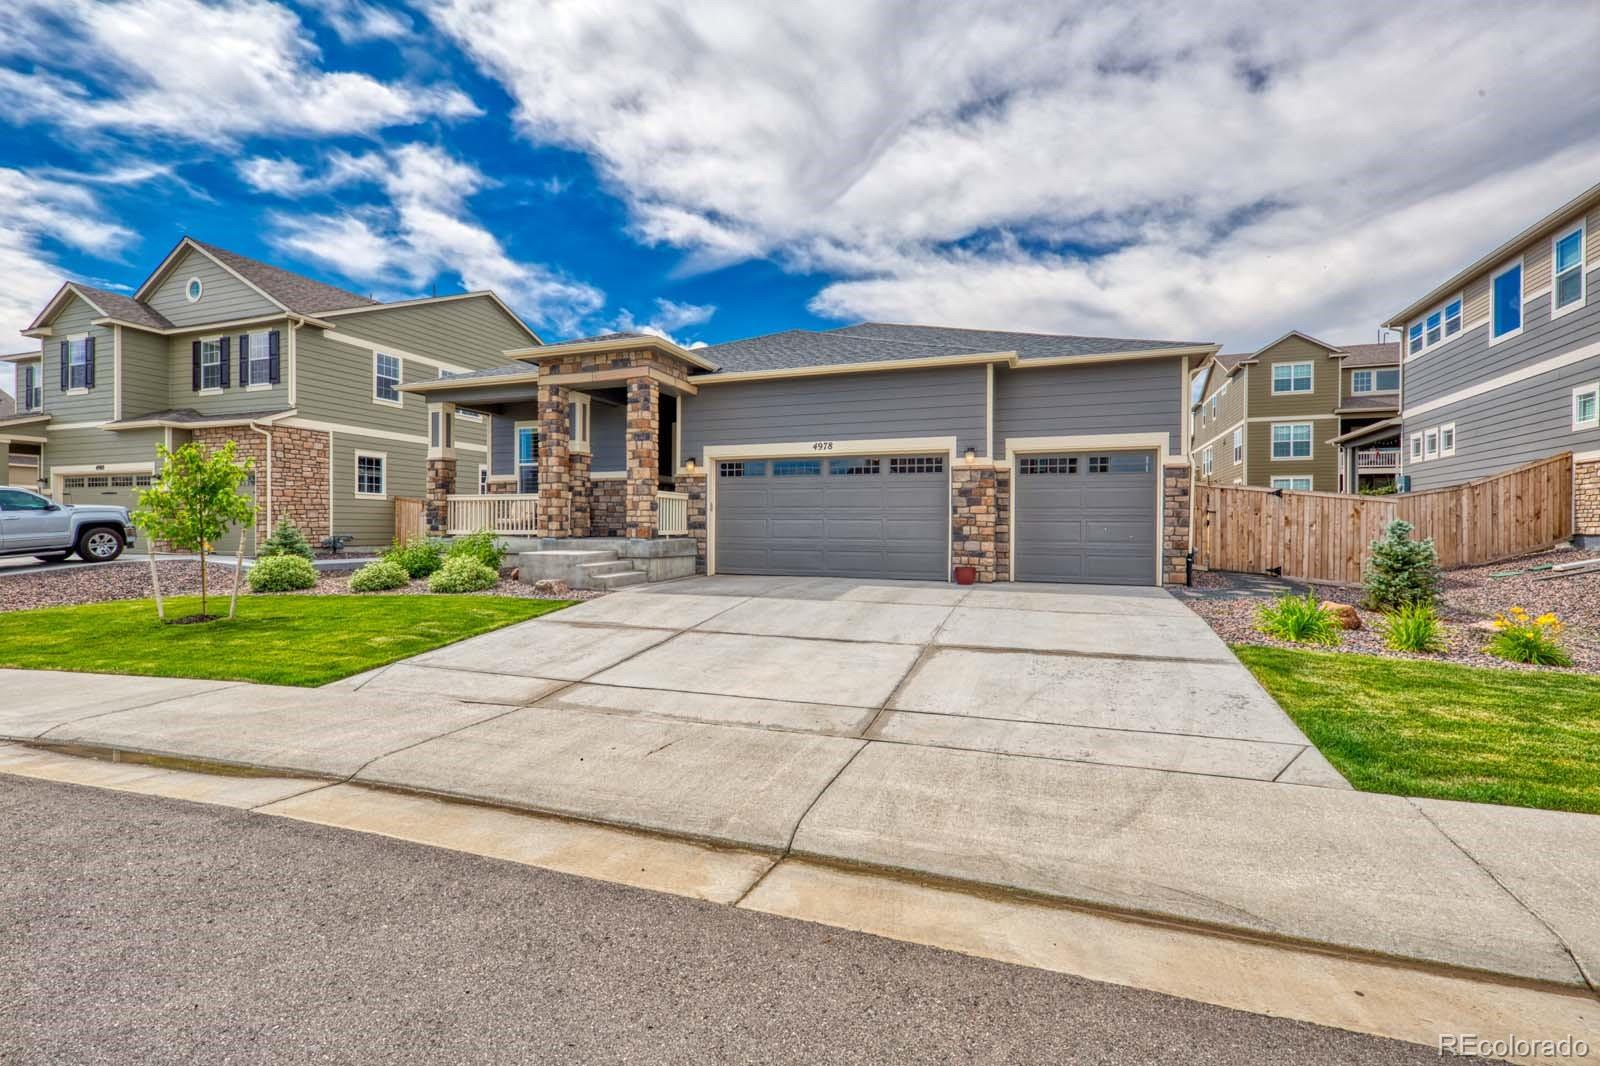 4978 E 142nd Avenue Property Photo - Thornton, CO real estate listing